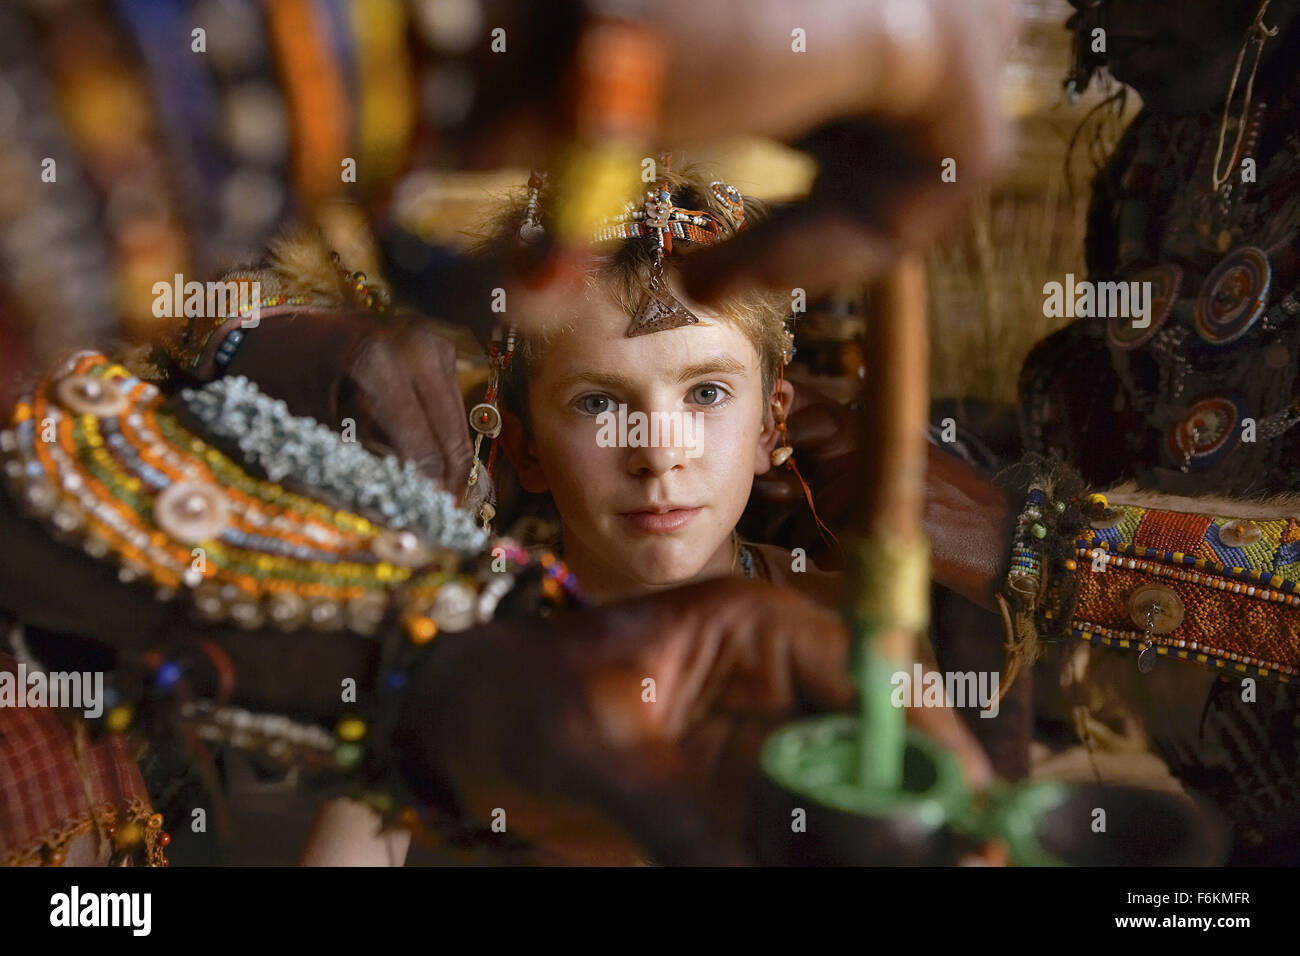 Release Date January 2007 Movie Title Arthur And The Invisibles Stock Photo Alamy